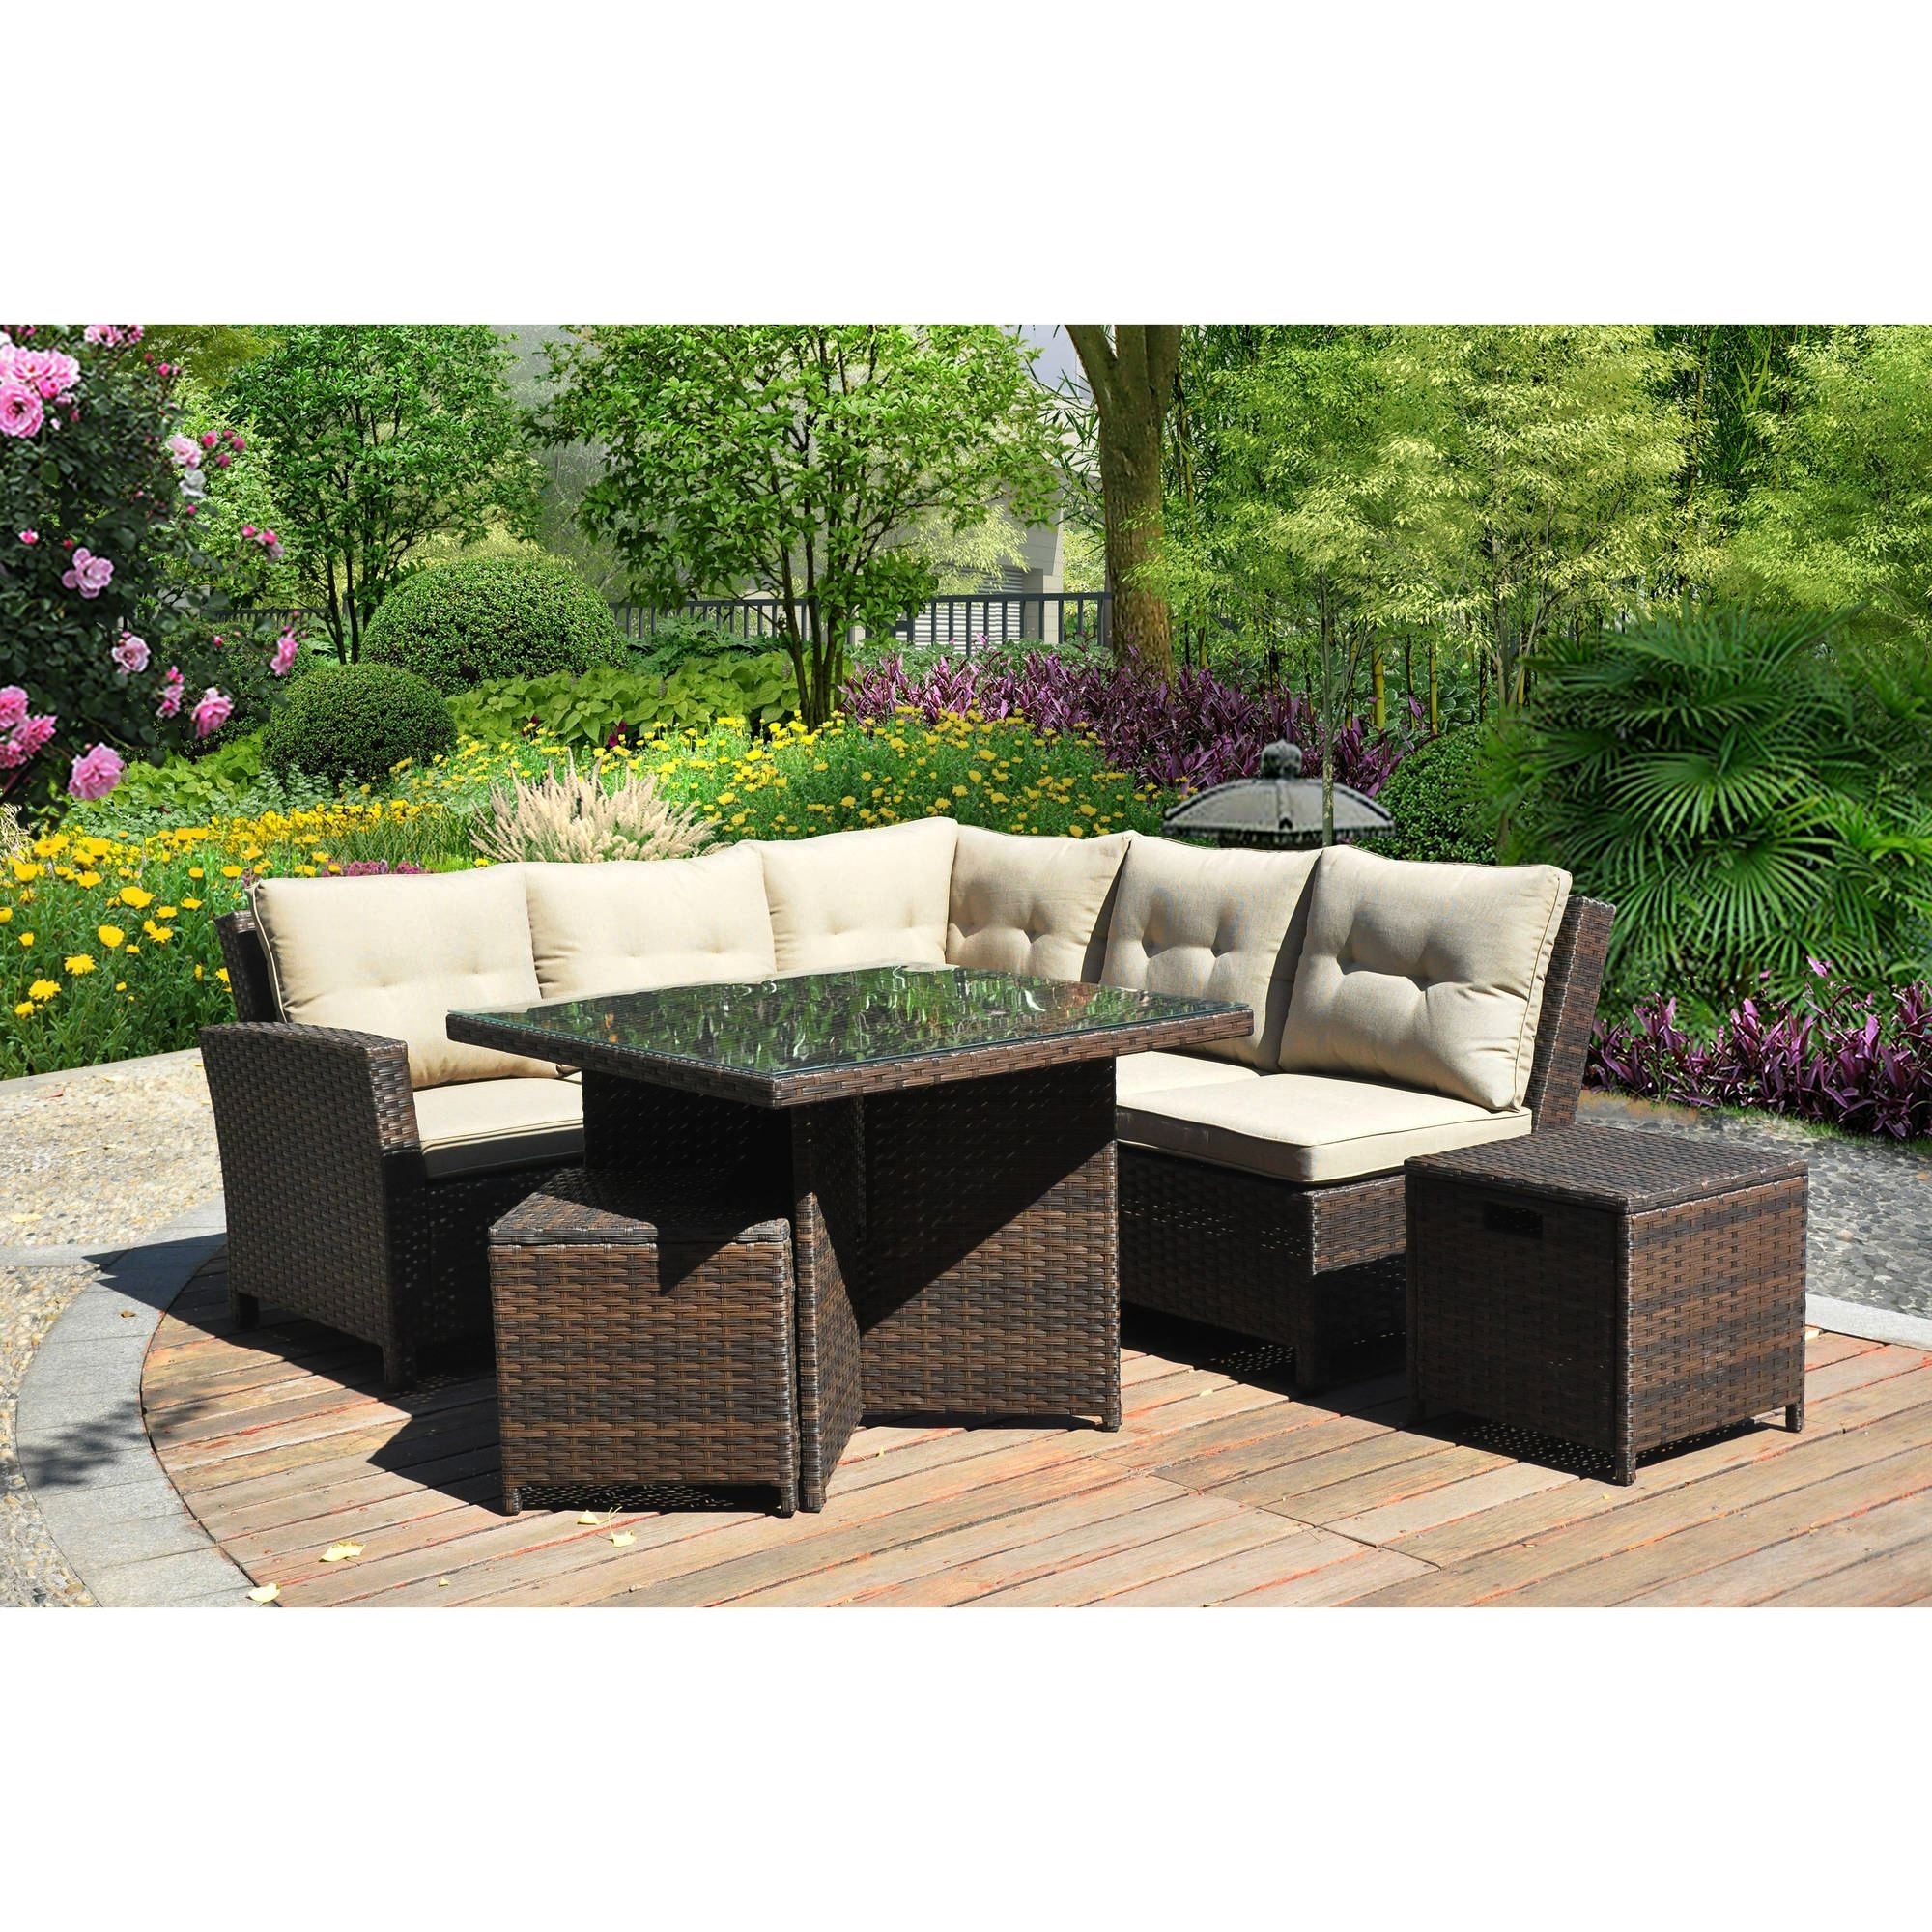 Well Liked Raleigh Outdoor 5 Piece L Shape Wicker Sectional With Cushions With New Orleans Sectional Sofas (View 19 of 20)